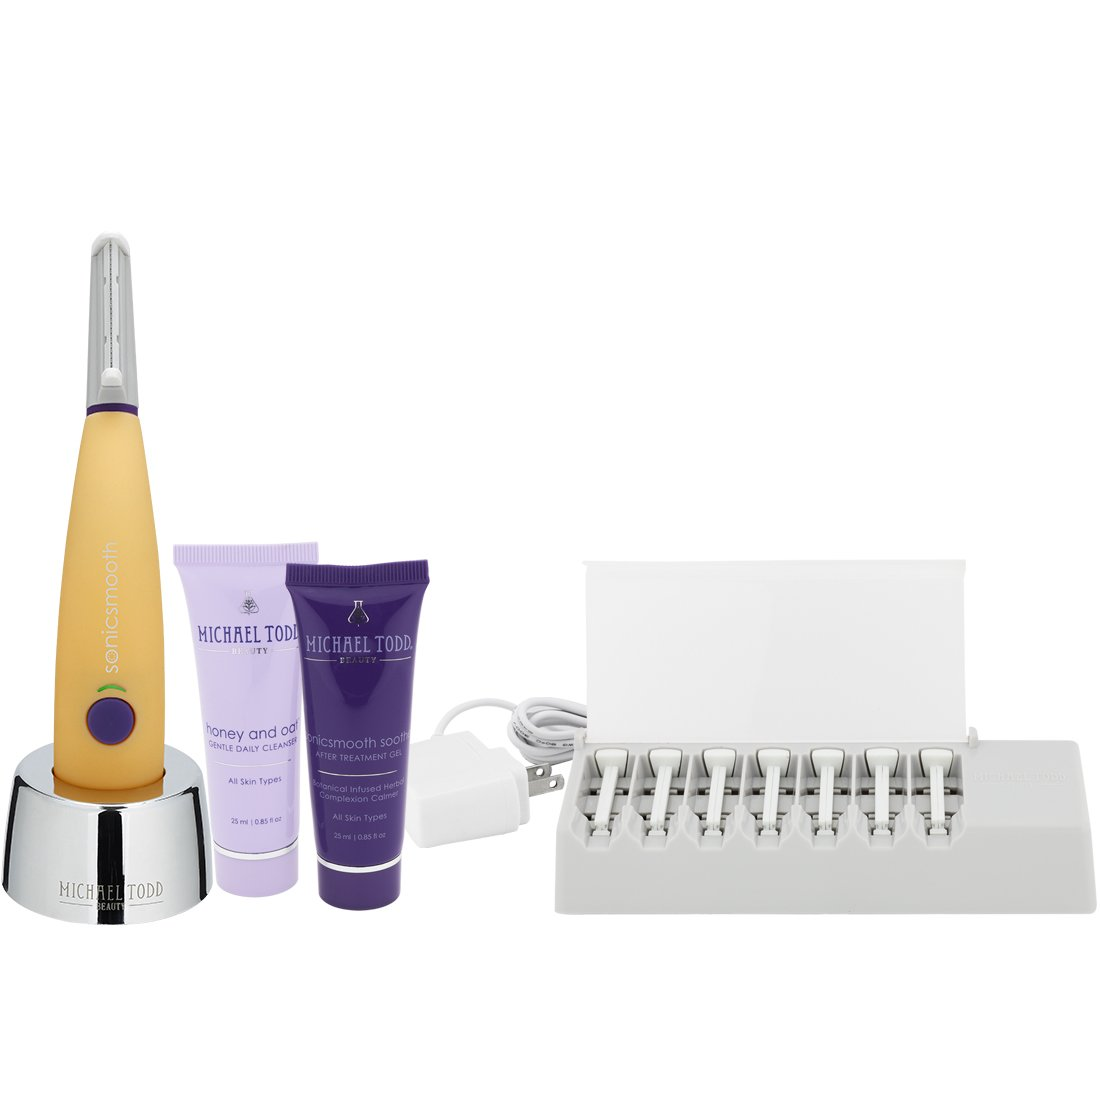 Michael Todd Sonicsmooth At-Home Dermaplaning Kit with Replacement Blades, Cleanser & Serum, Sonic Powered Peach Fuzz Remover and Exfoliation Tool, Yellow